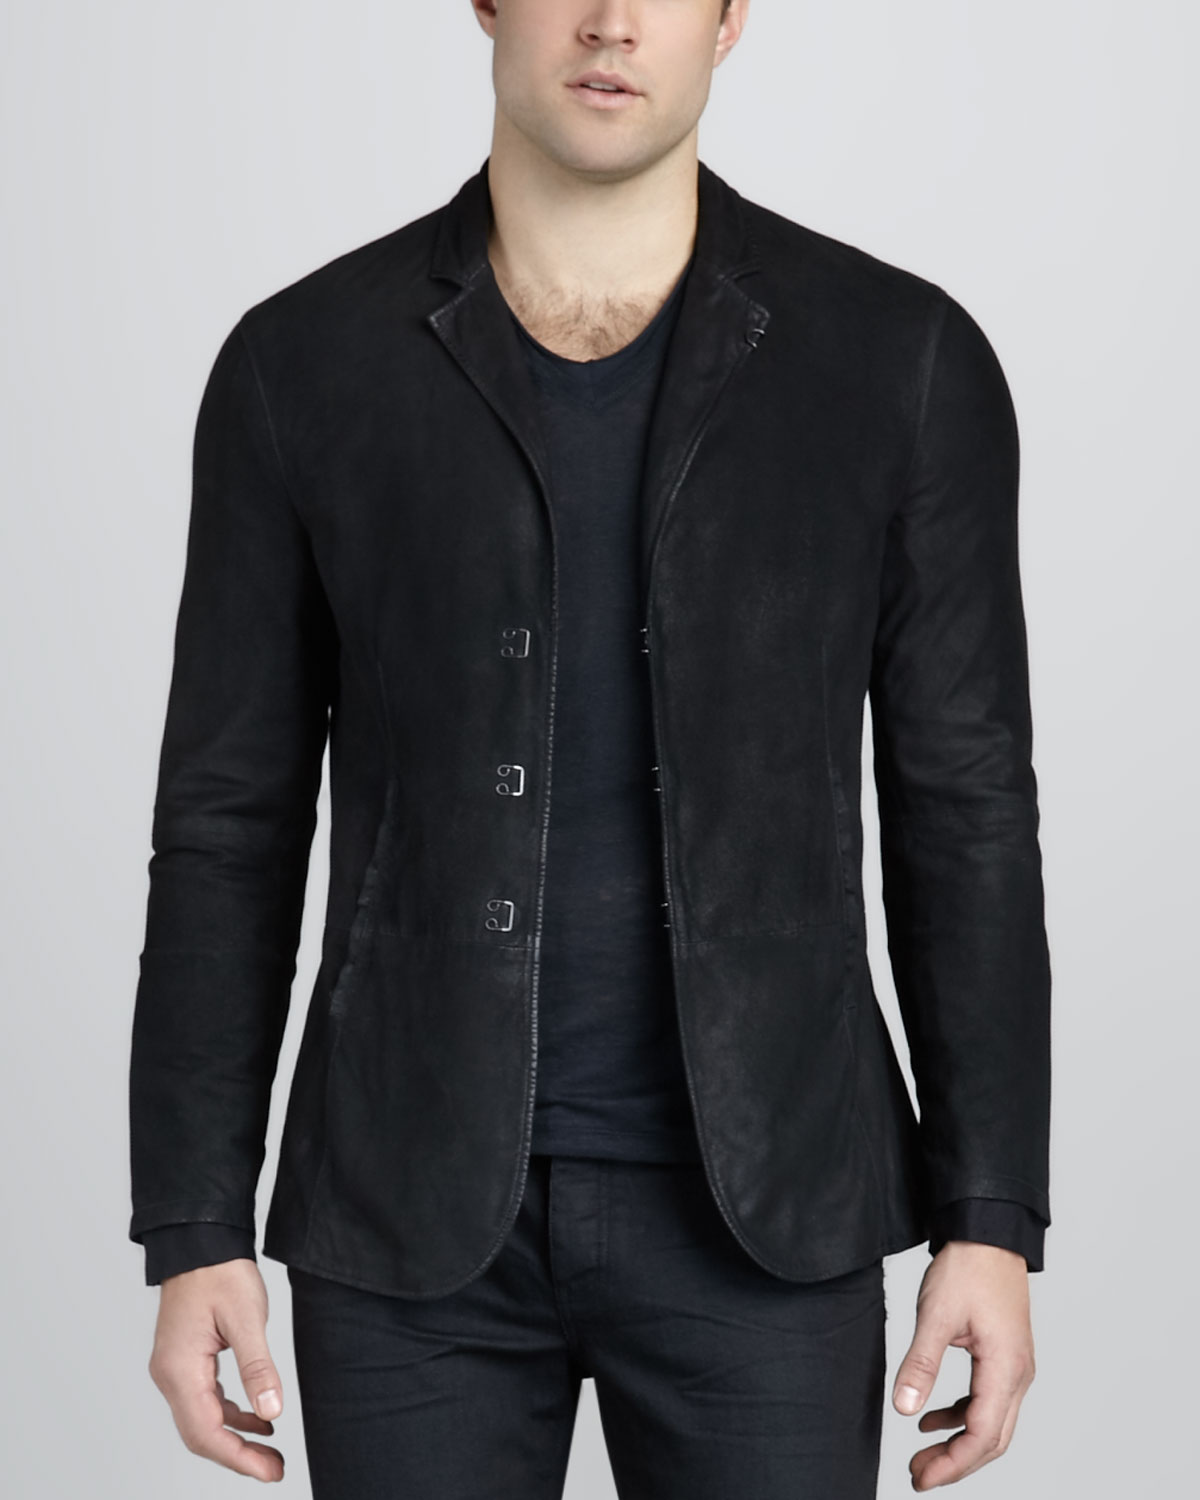 john varvatos suede hookandbar jacket in black for men lyst